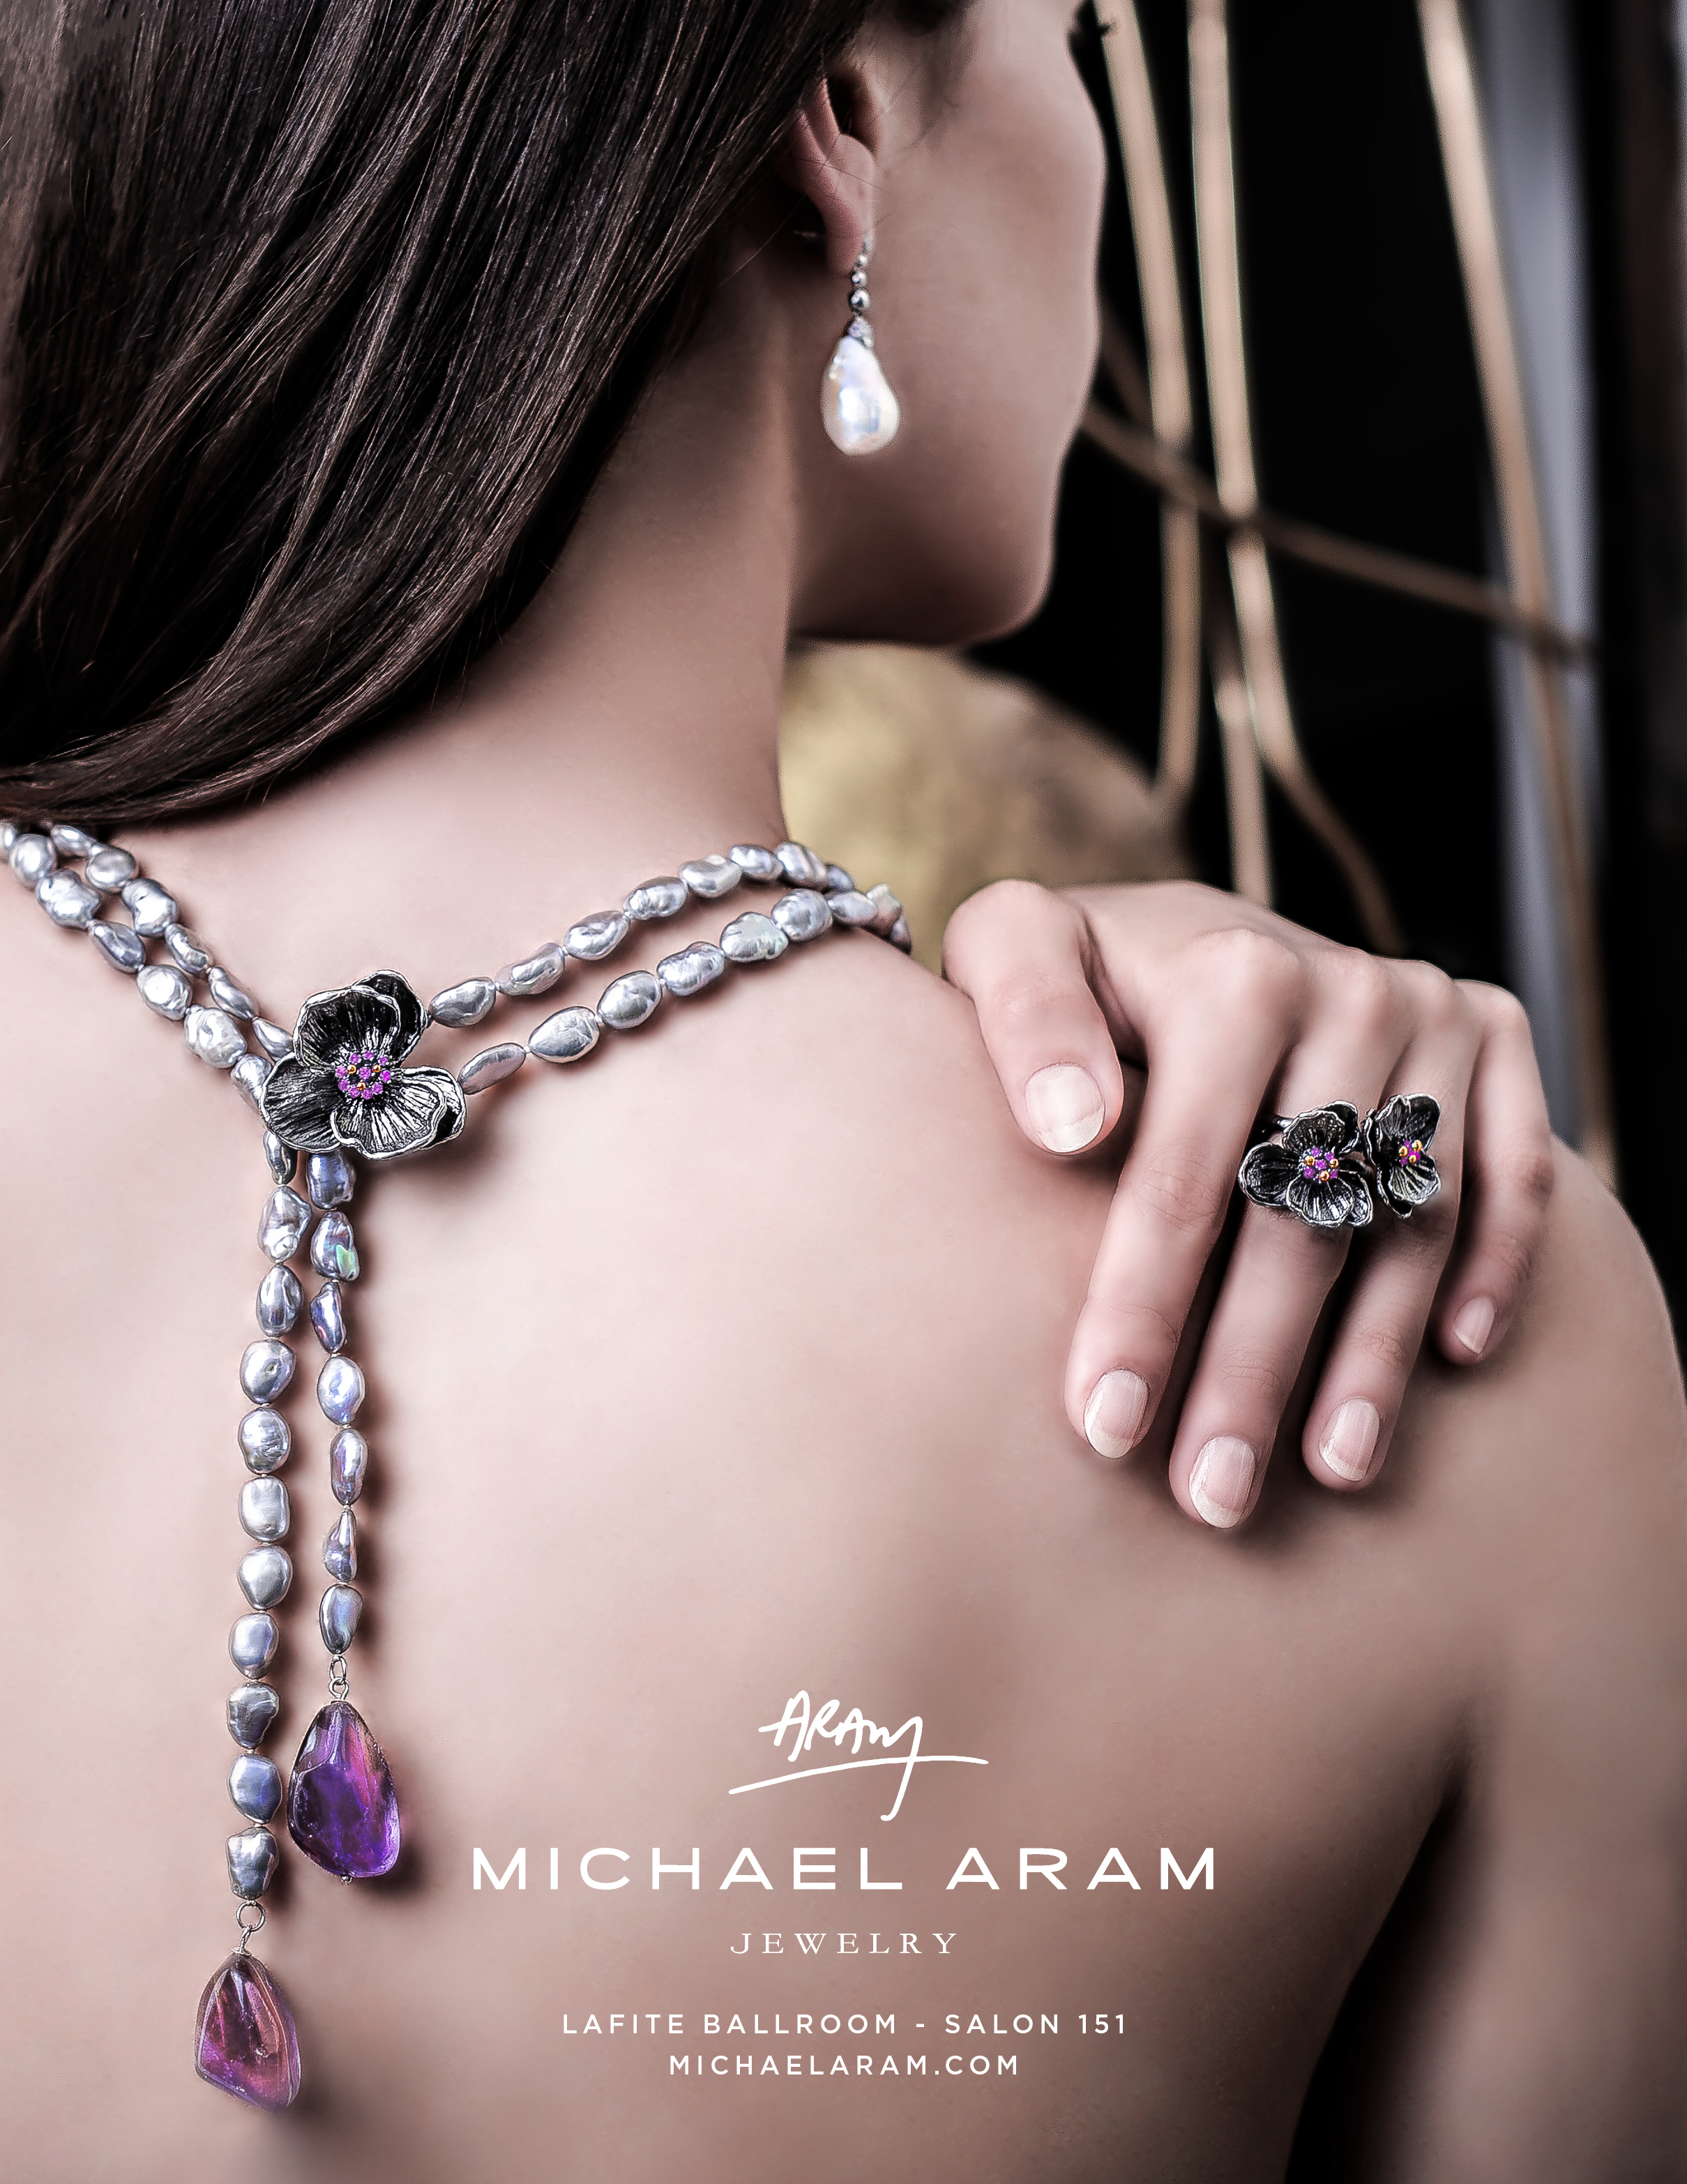 Couture-Jewelry-2017.jpg